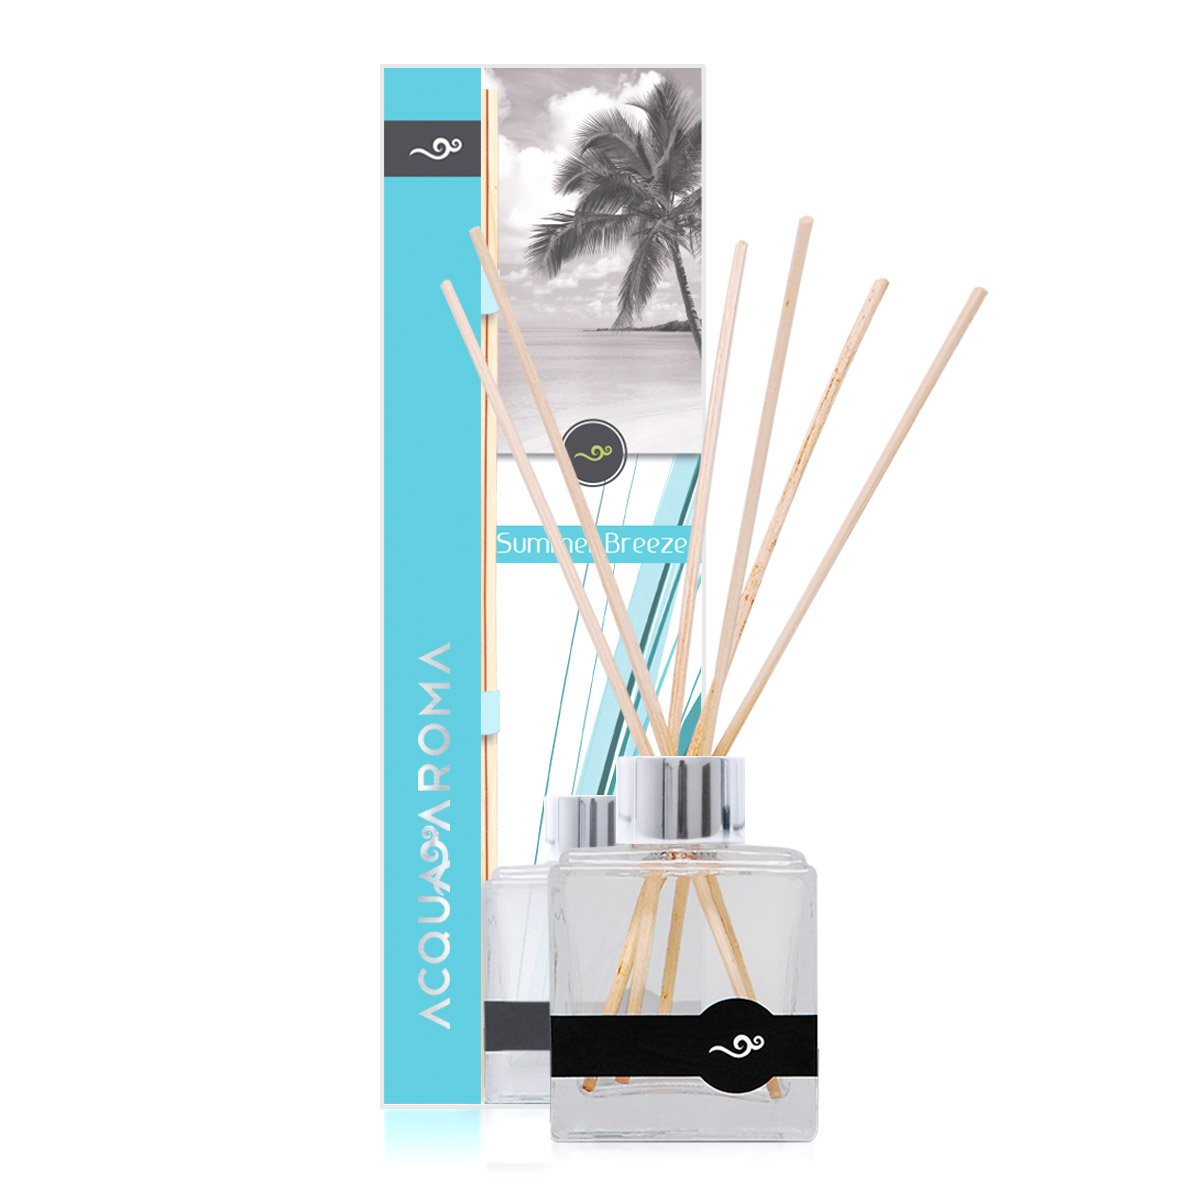 Acqua Aroma Summer Breeze Reed Diffuser 3.4 FL OZ (100ml) by Acqua Aroma